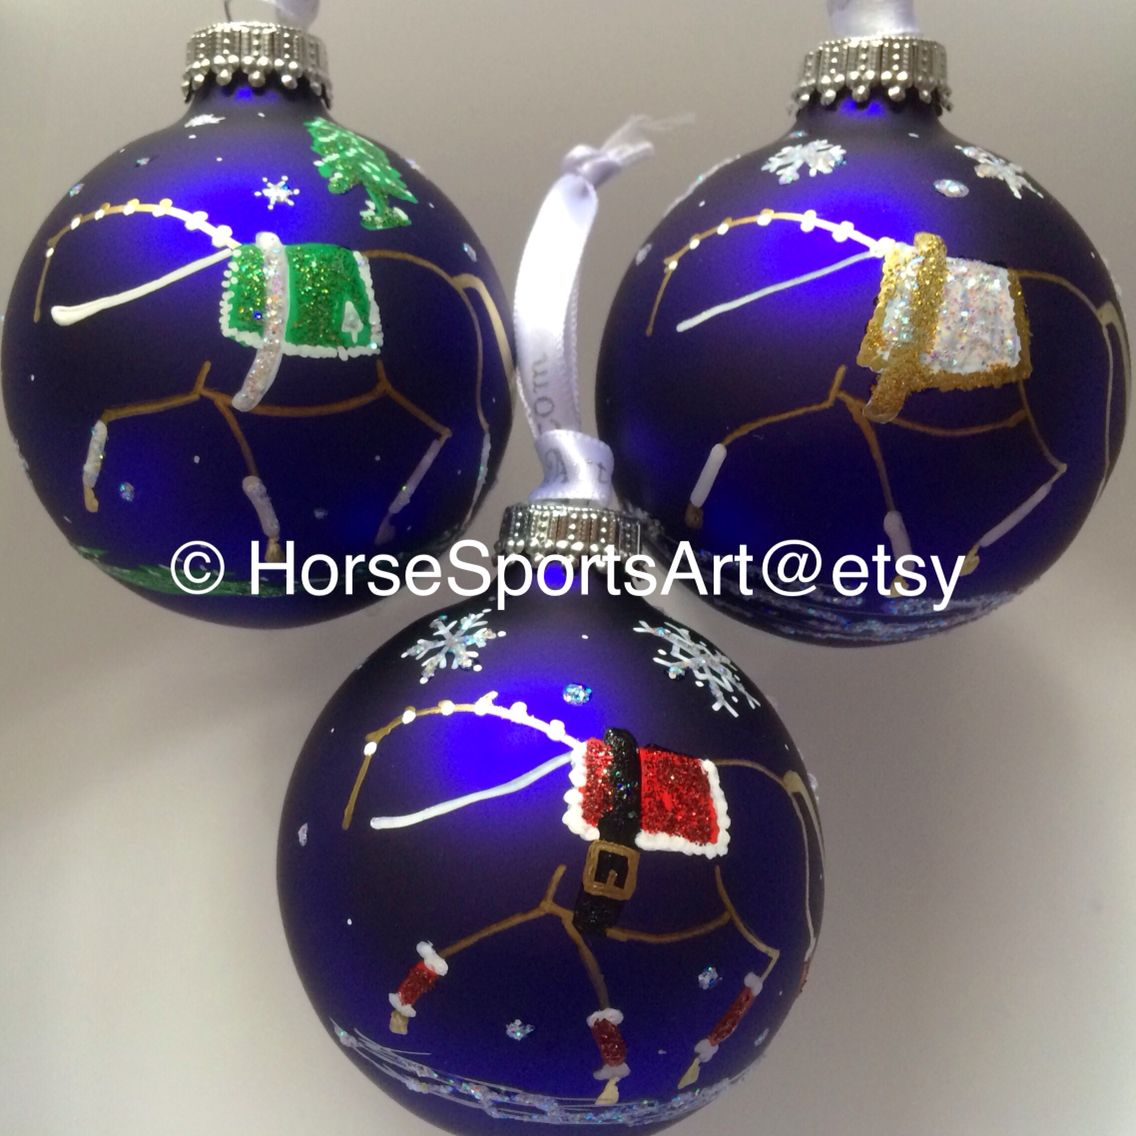 Equestrian Vaulting Horse Handpainted Christmas Ornaments